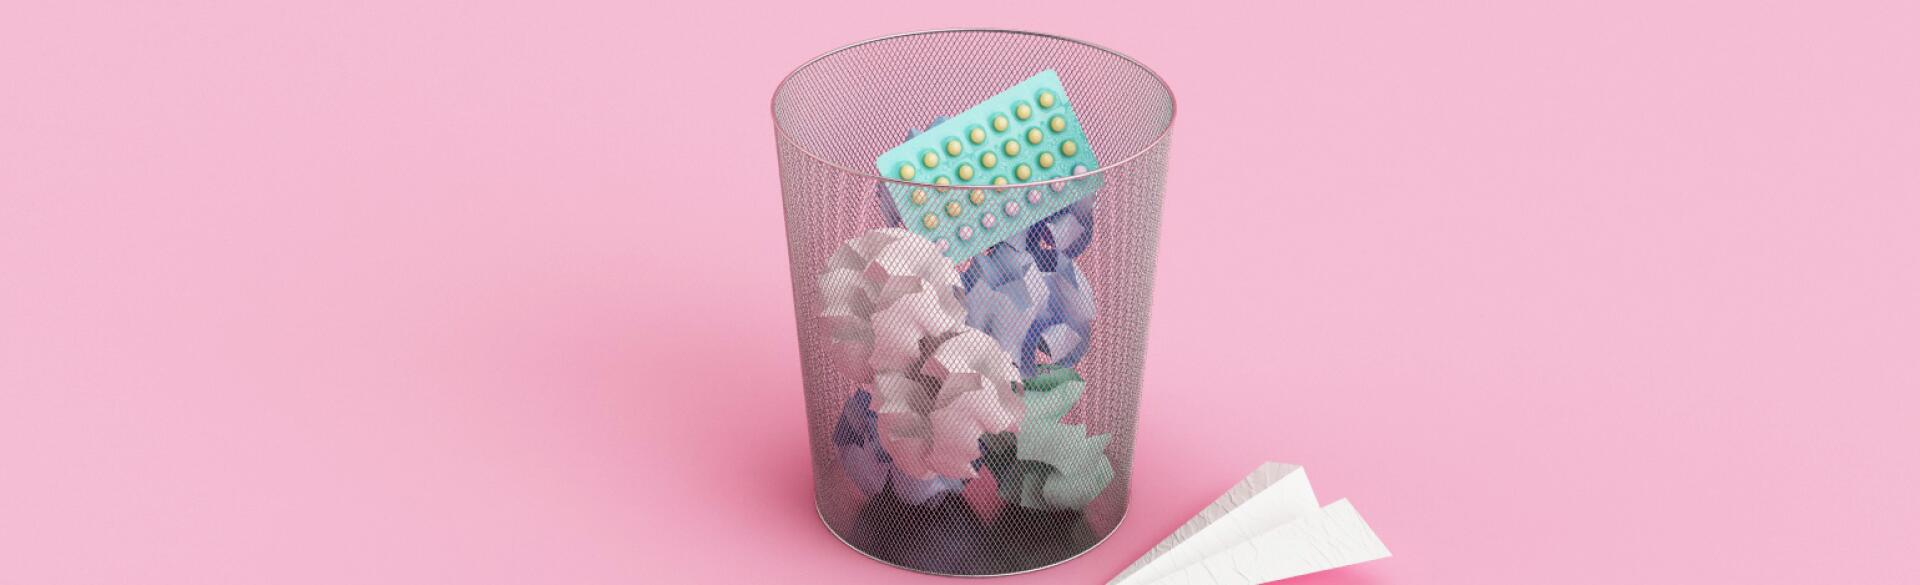 garbage can with birth control pill package in it